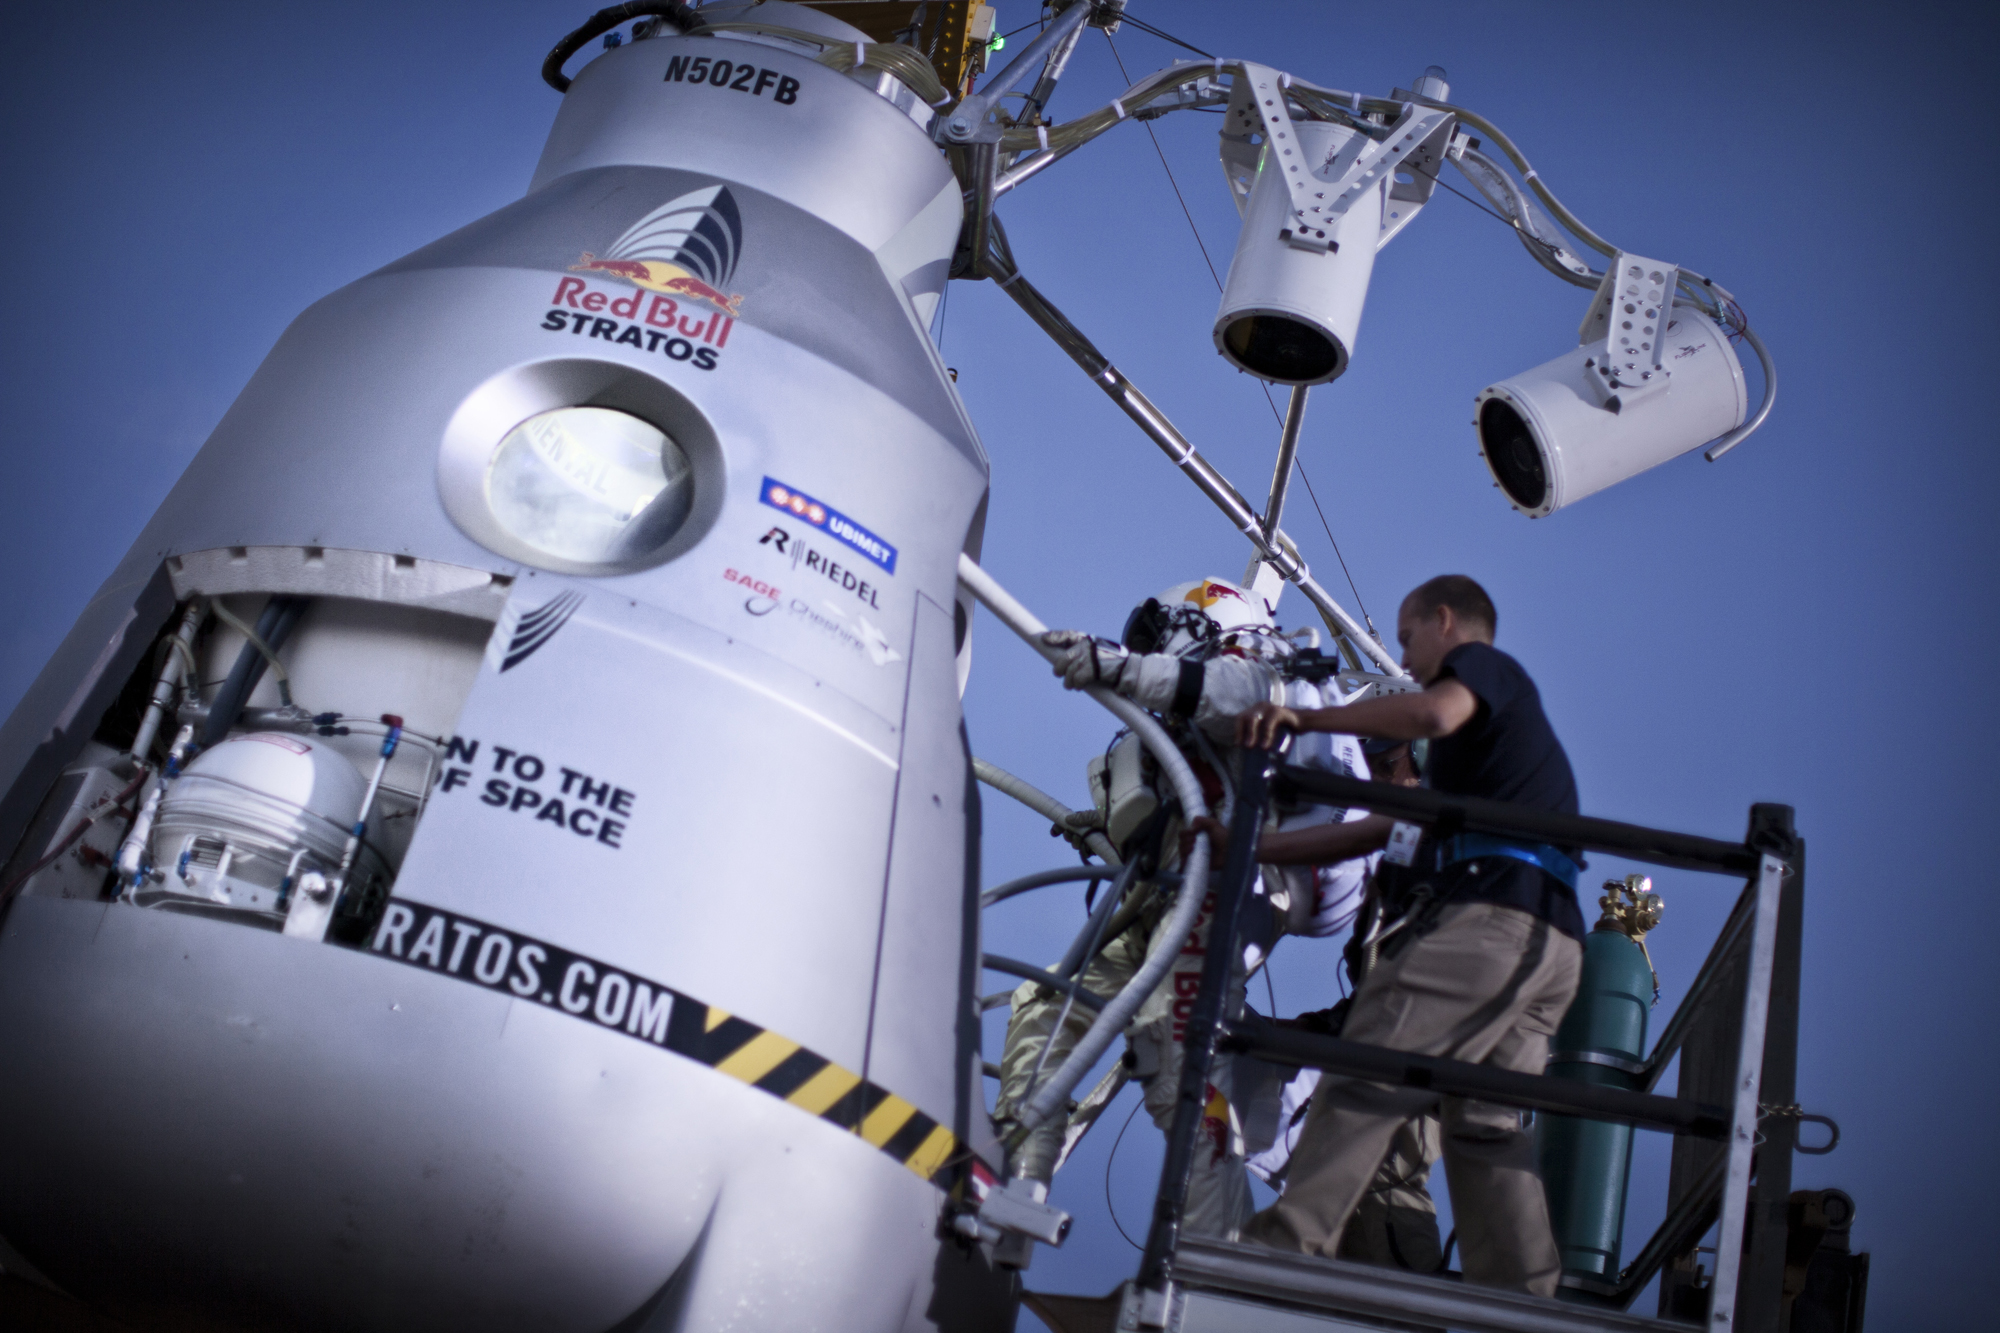 Climb Aboard - Red Bull Stratos, 7/25/12 Test Jump